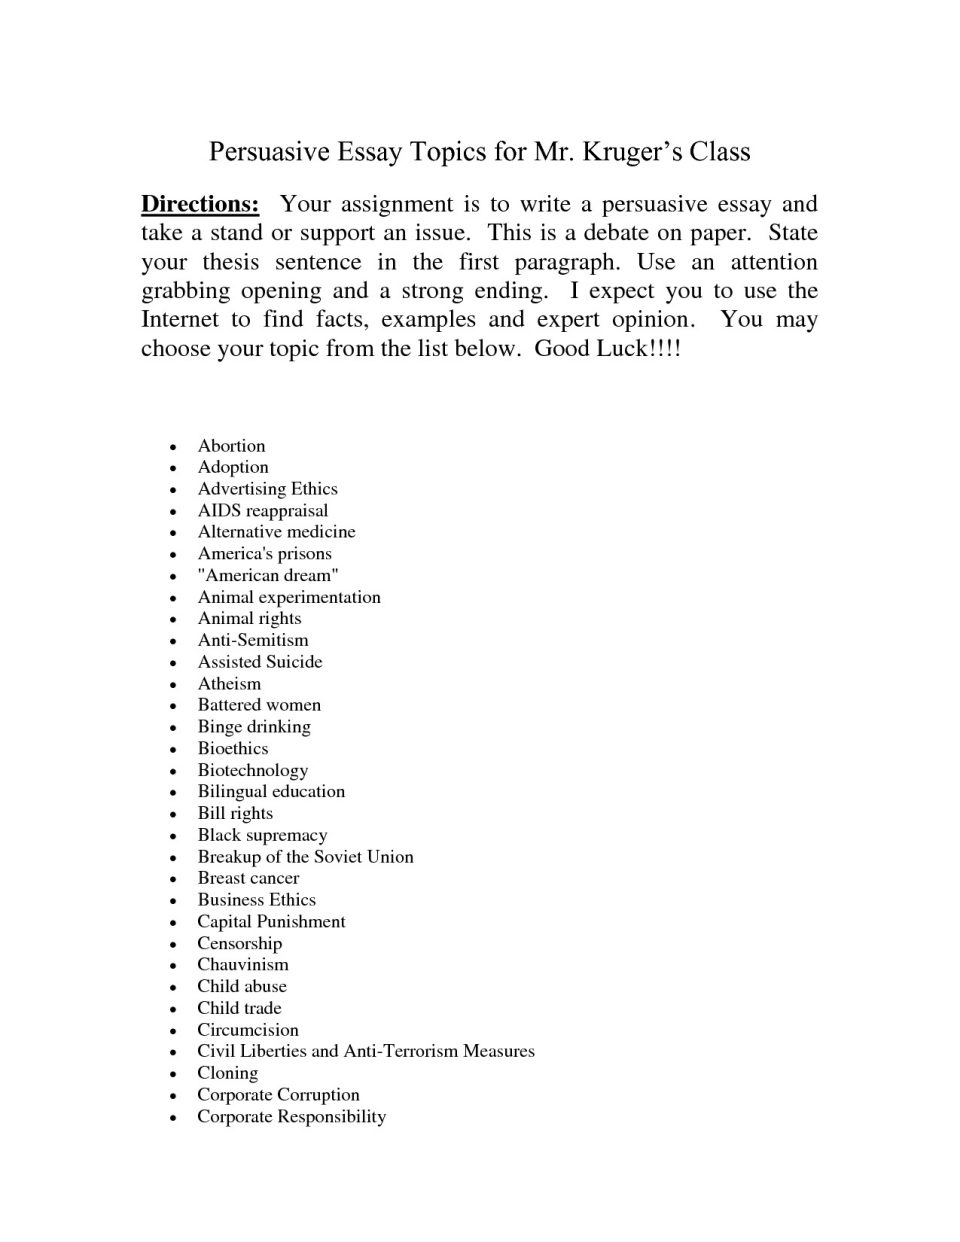 012 Great Research Paper Topics Topic For Essay Barca Fontanacountryinn Within Good Persuasive Narrative To Write Abo Easy About Personal Descriptive Informative Synthesis College Striking Argumentative Students Freshmen Full